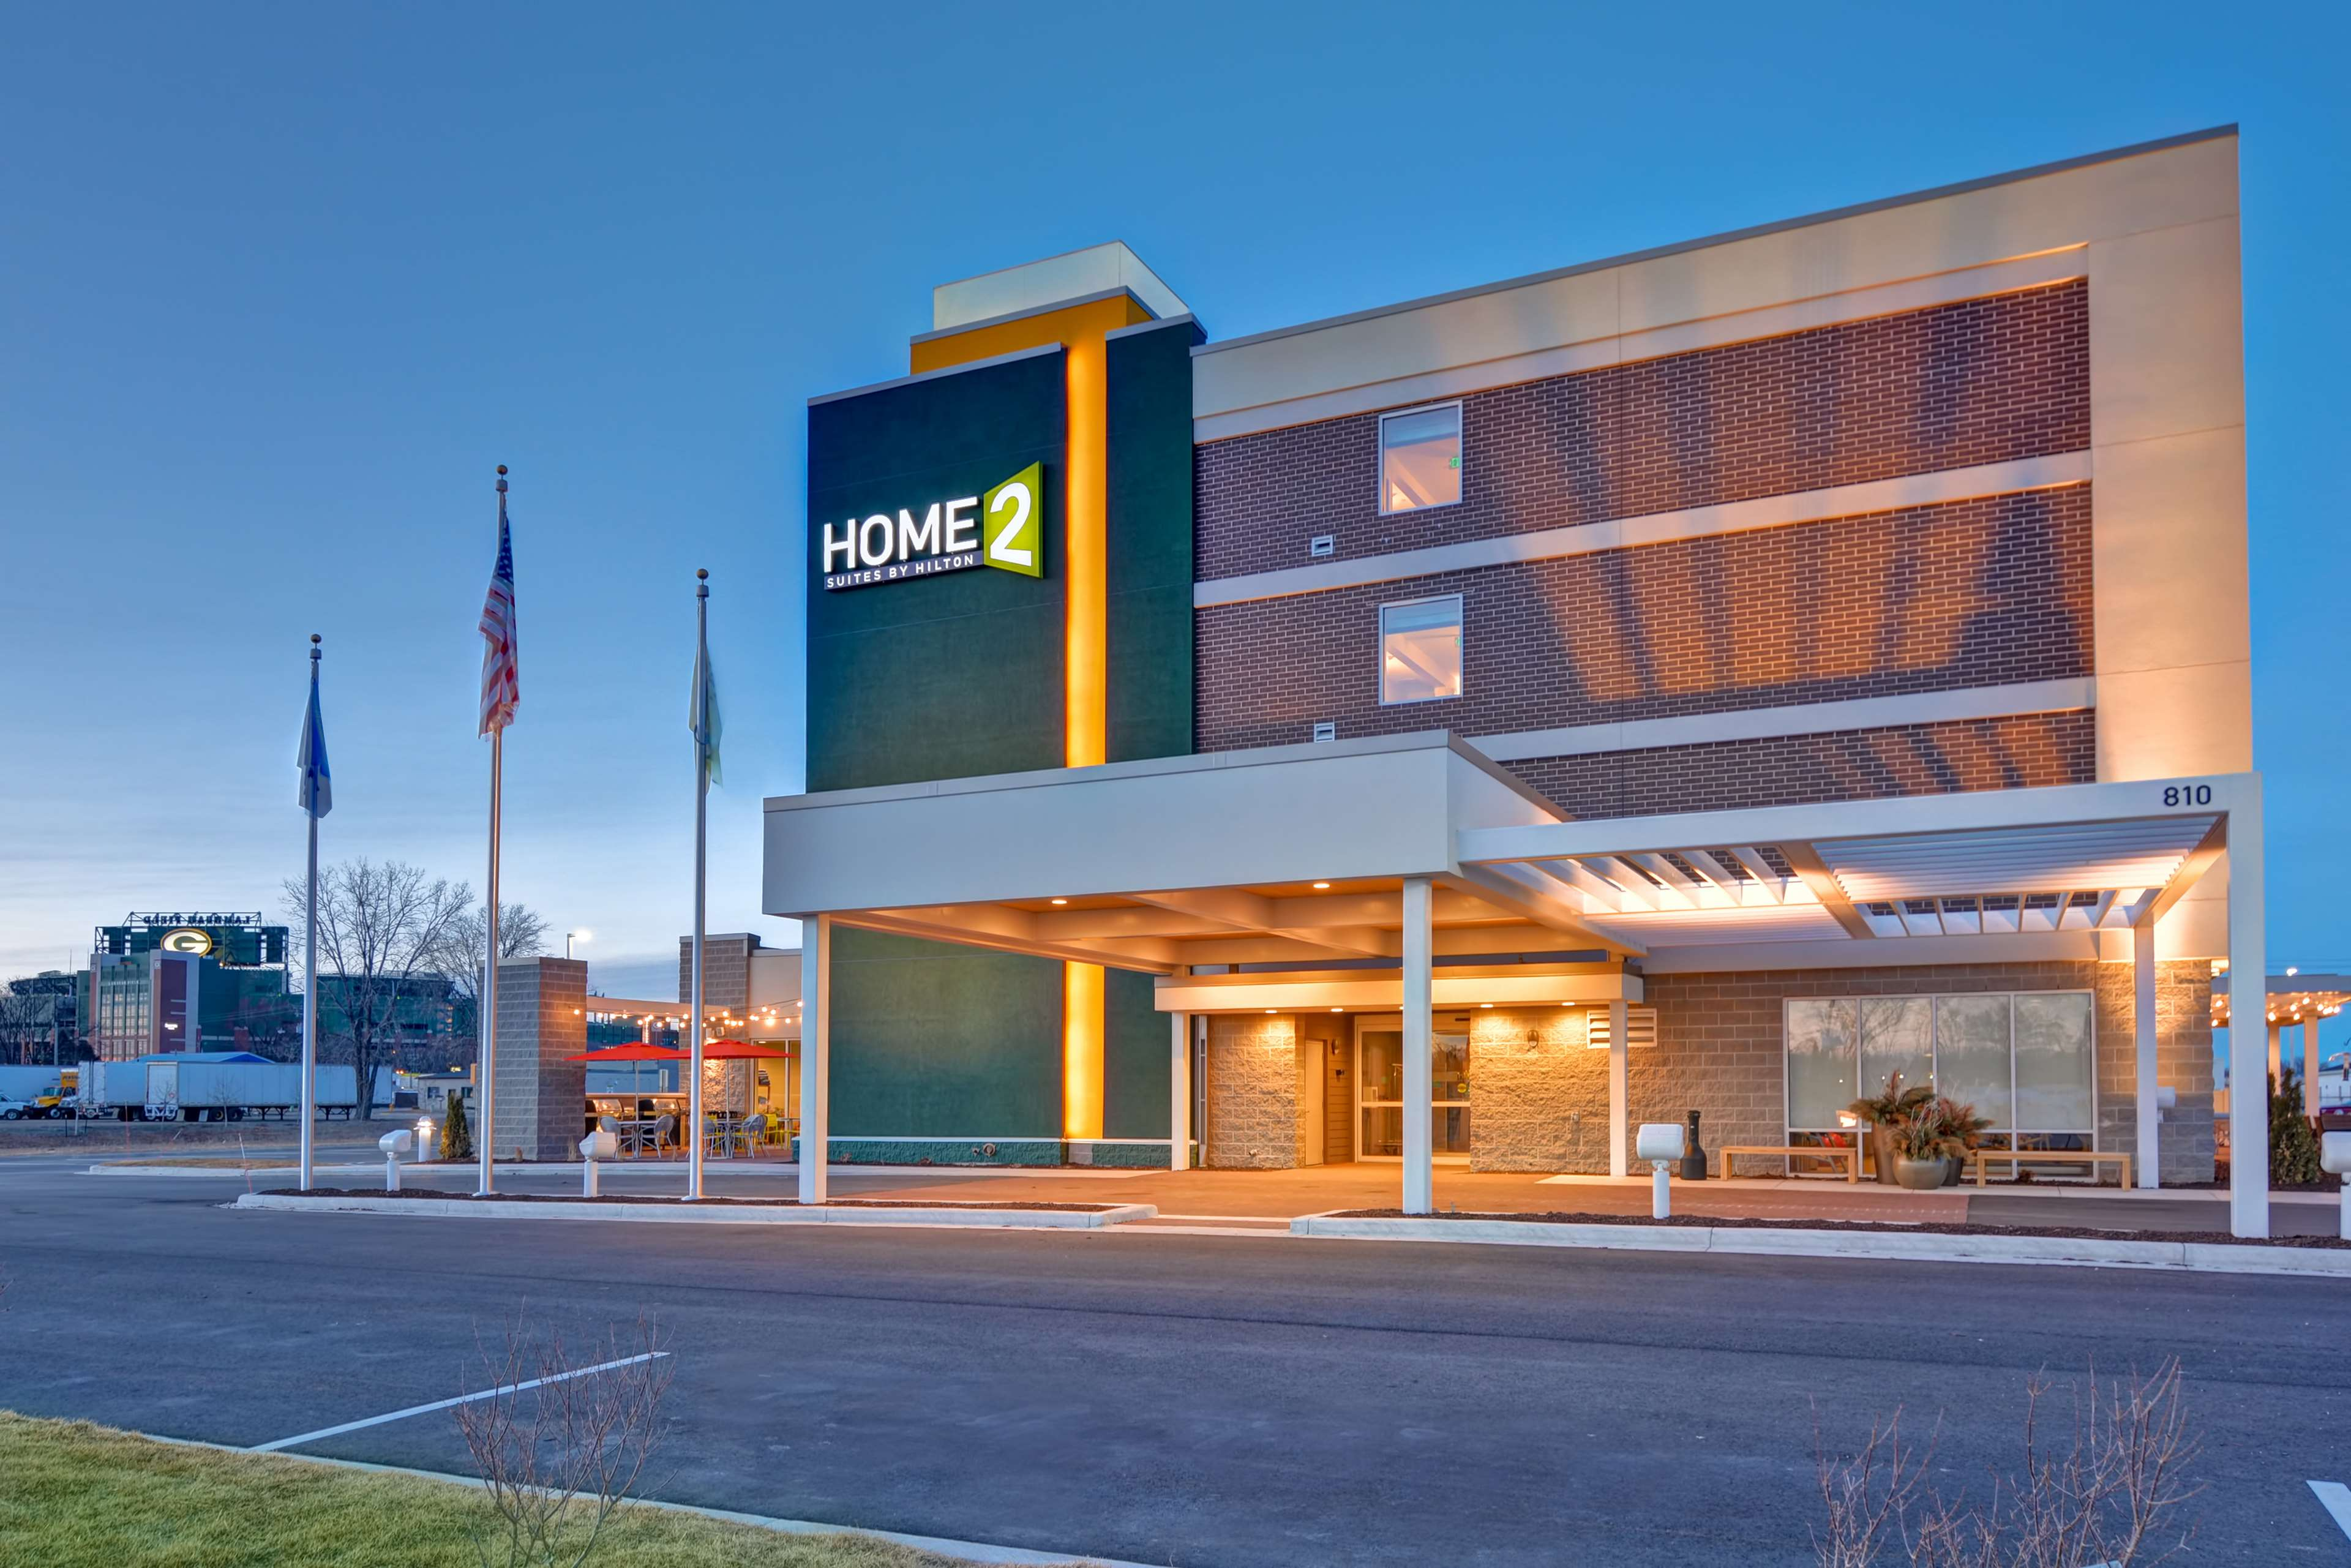 Home2 Suites by Hilton Green Bay image 0